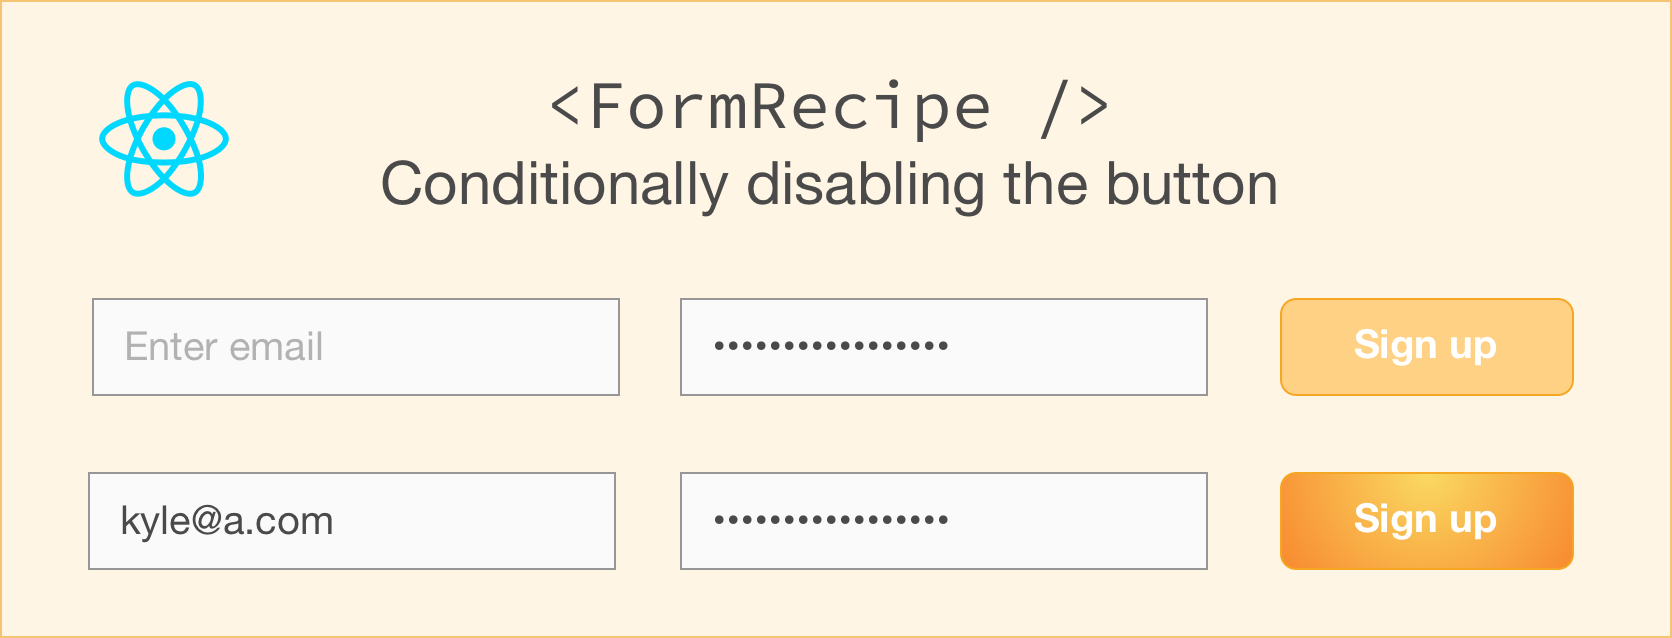 Form recipe: Conditionally disabling the Submit button